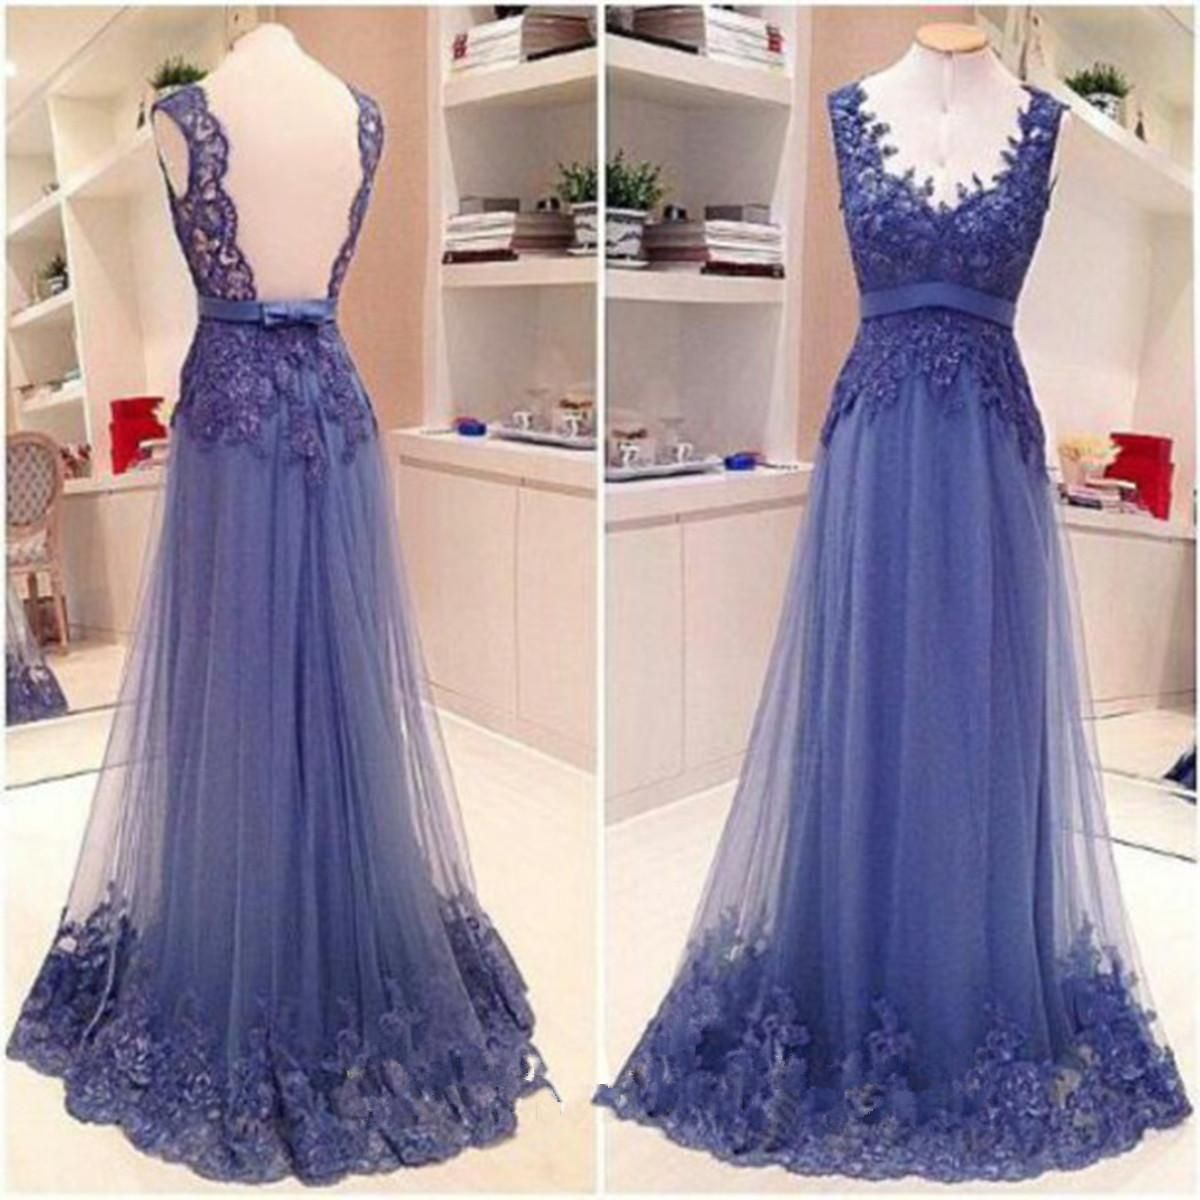 Sexy backless long prom dresseslace applique prom dressestulle